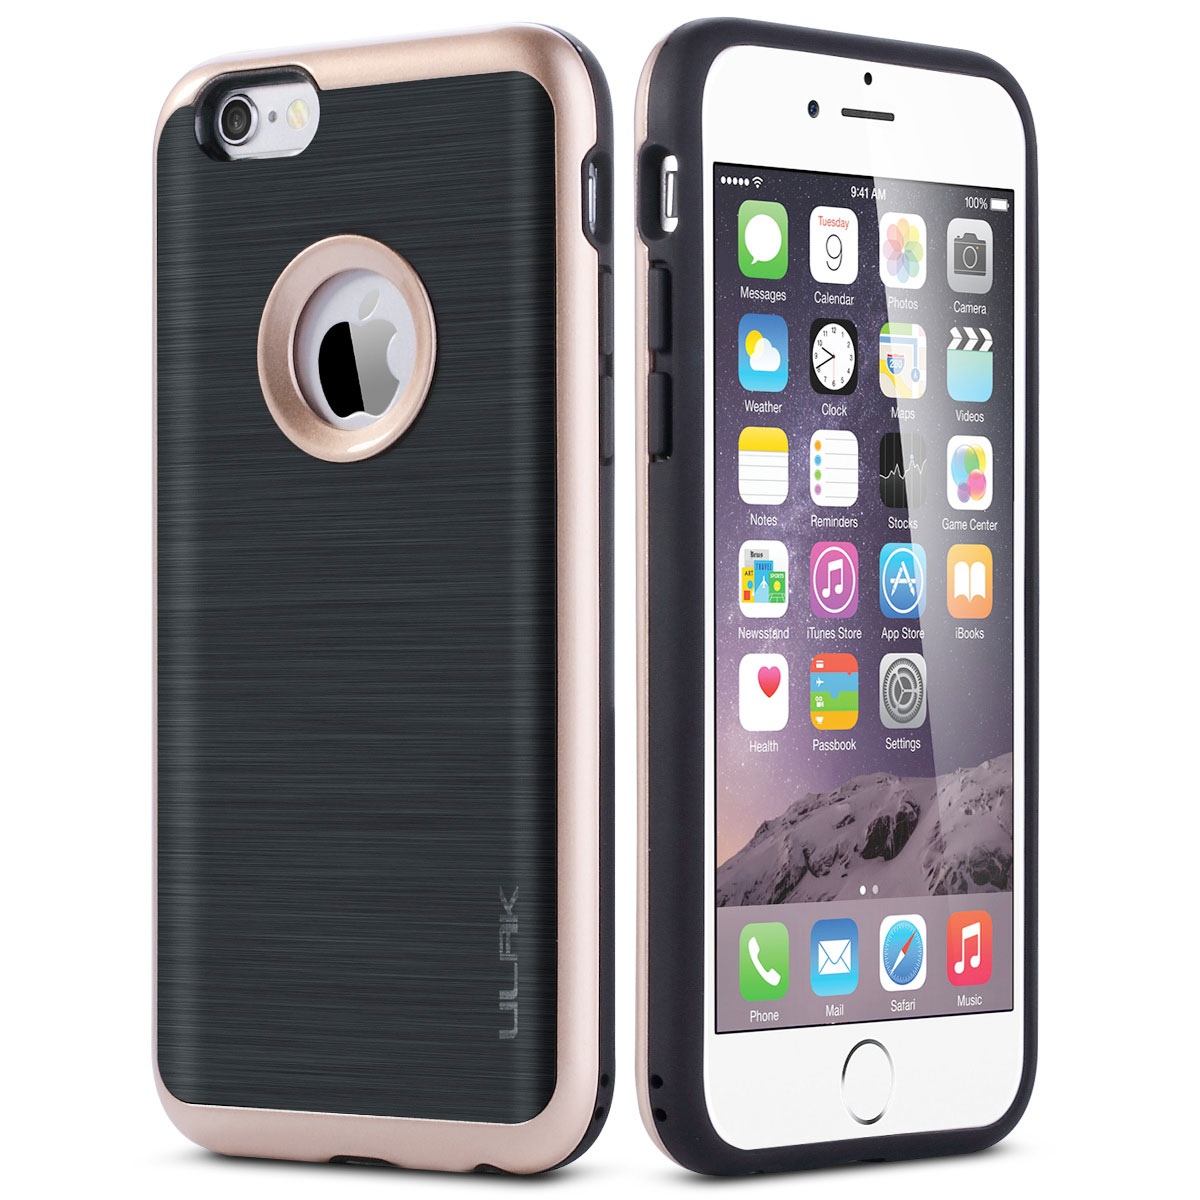 thin protective iphone 4 case